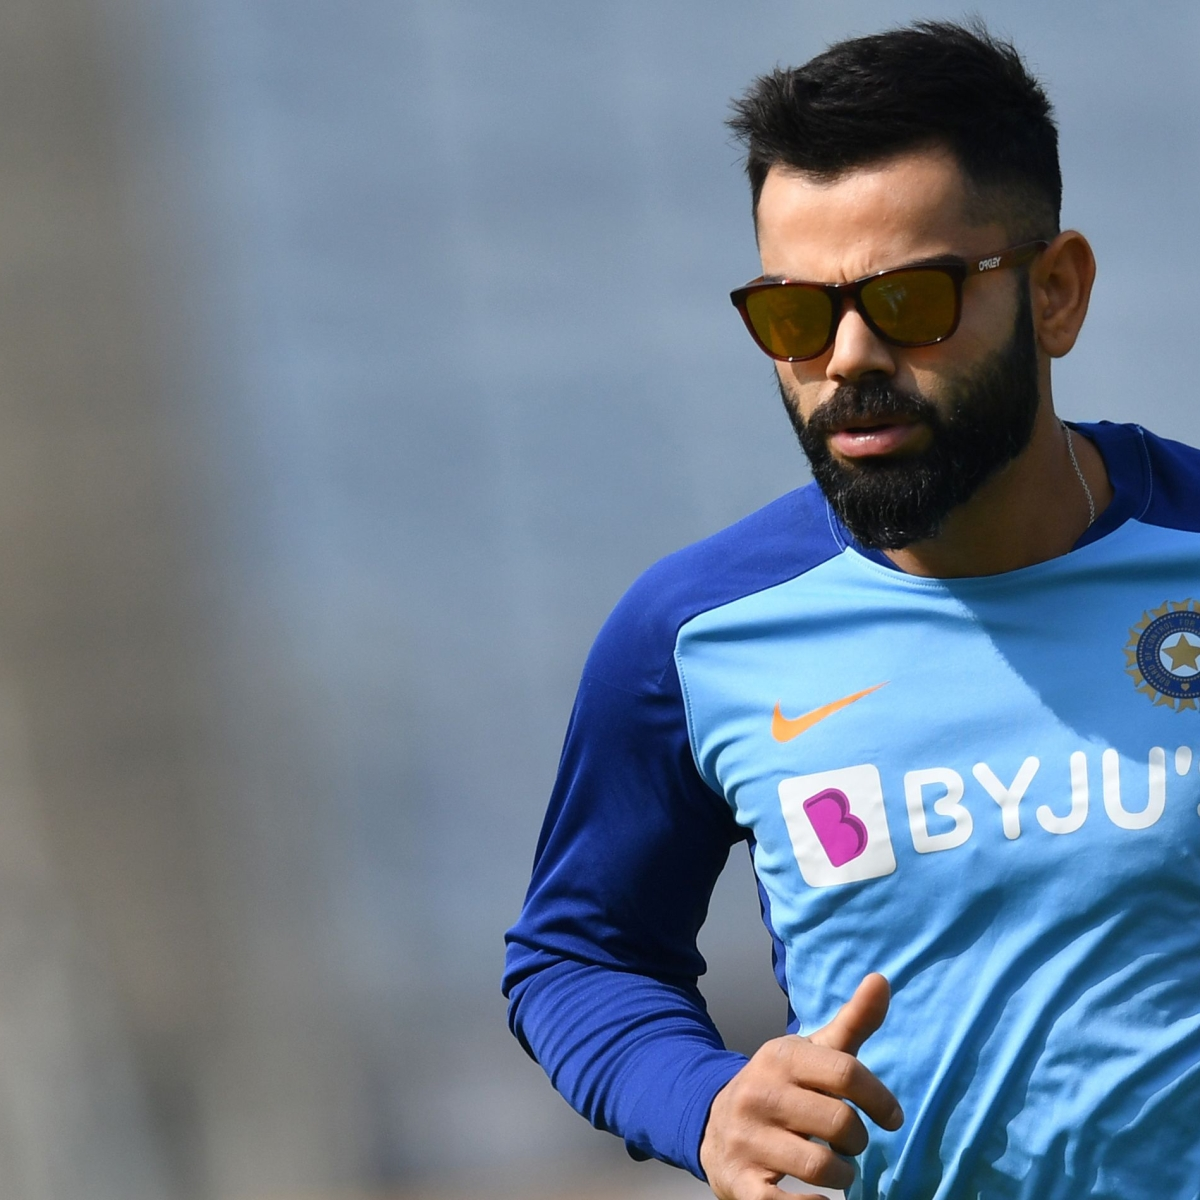 Will open in IPL to understand role as opener and open slot for someone like Suryakumar Yadav, says Virat Kohli